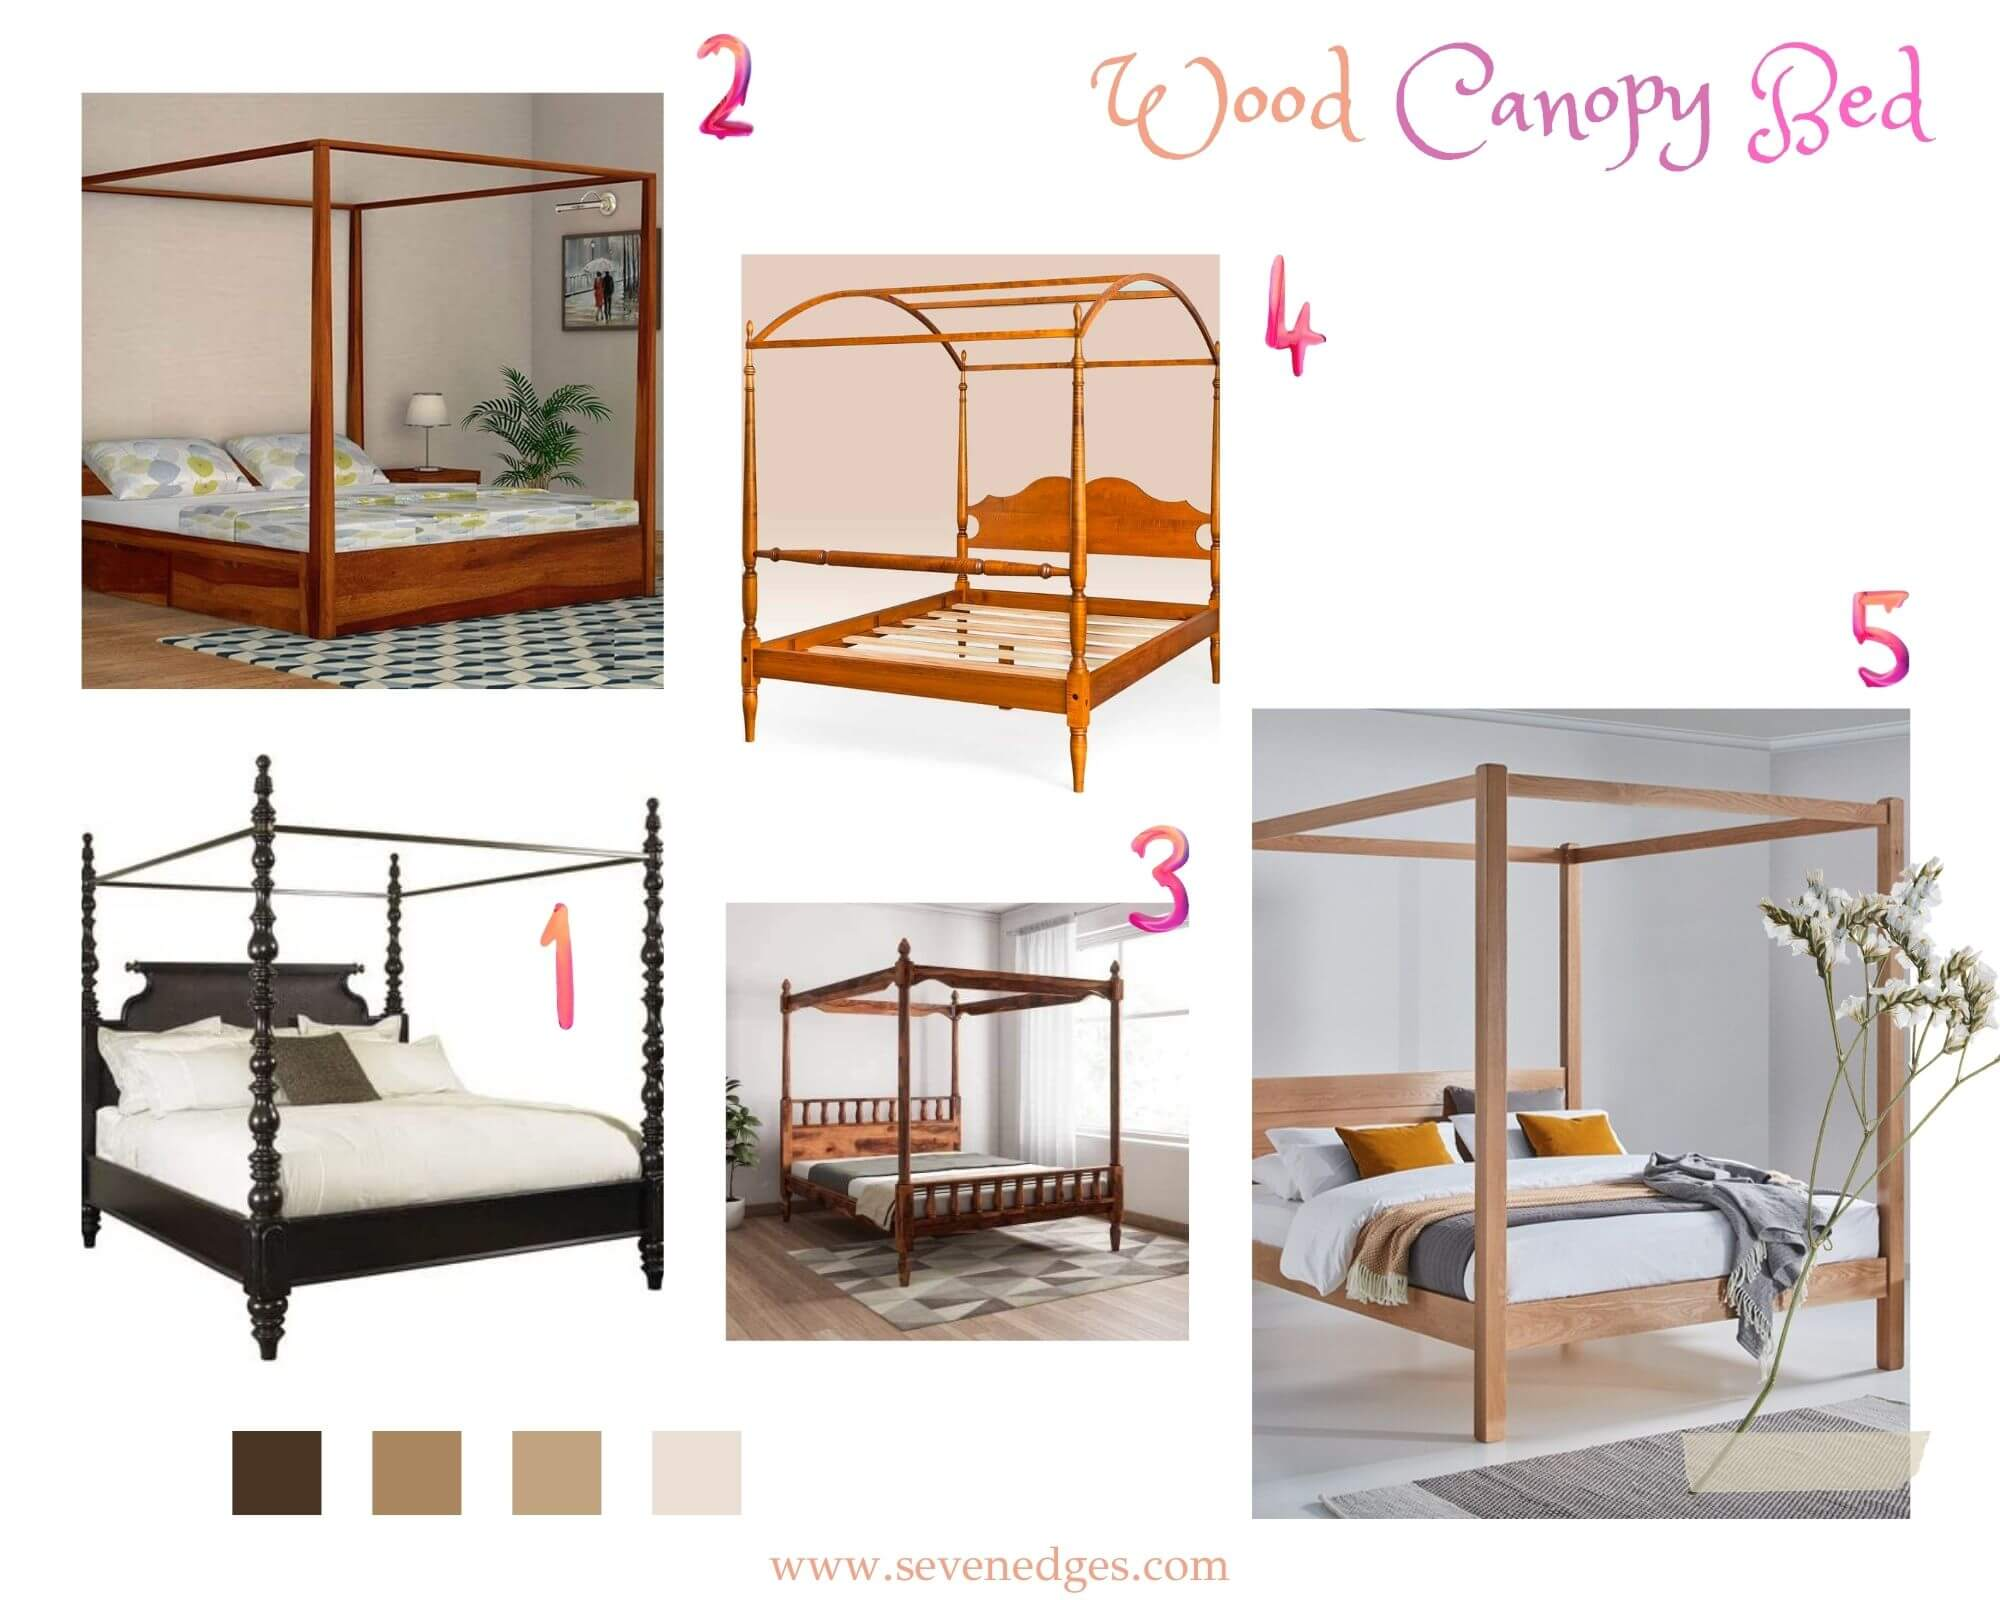 Wood Canopy Bed